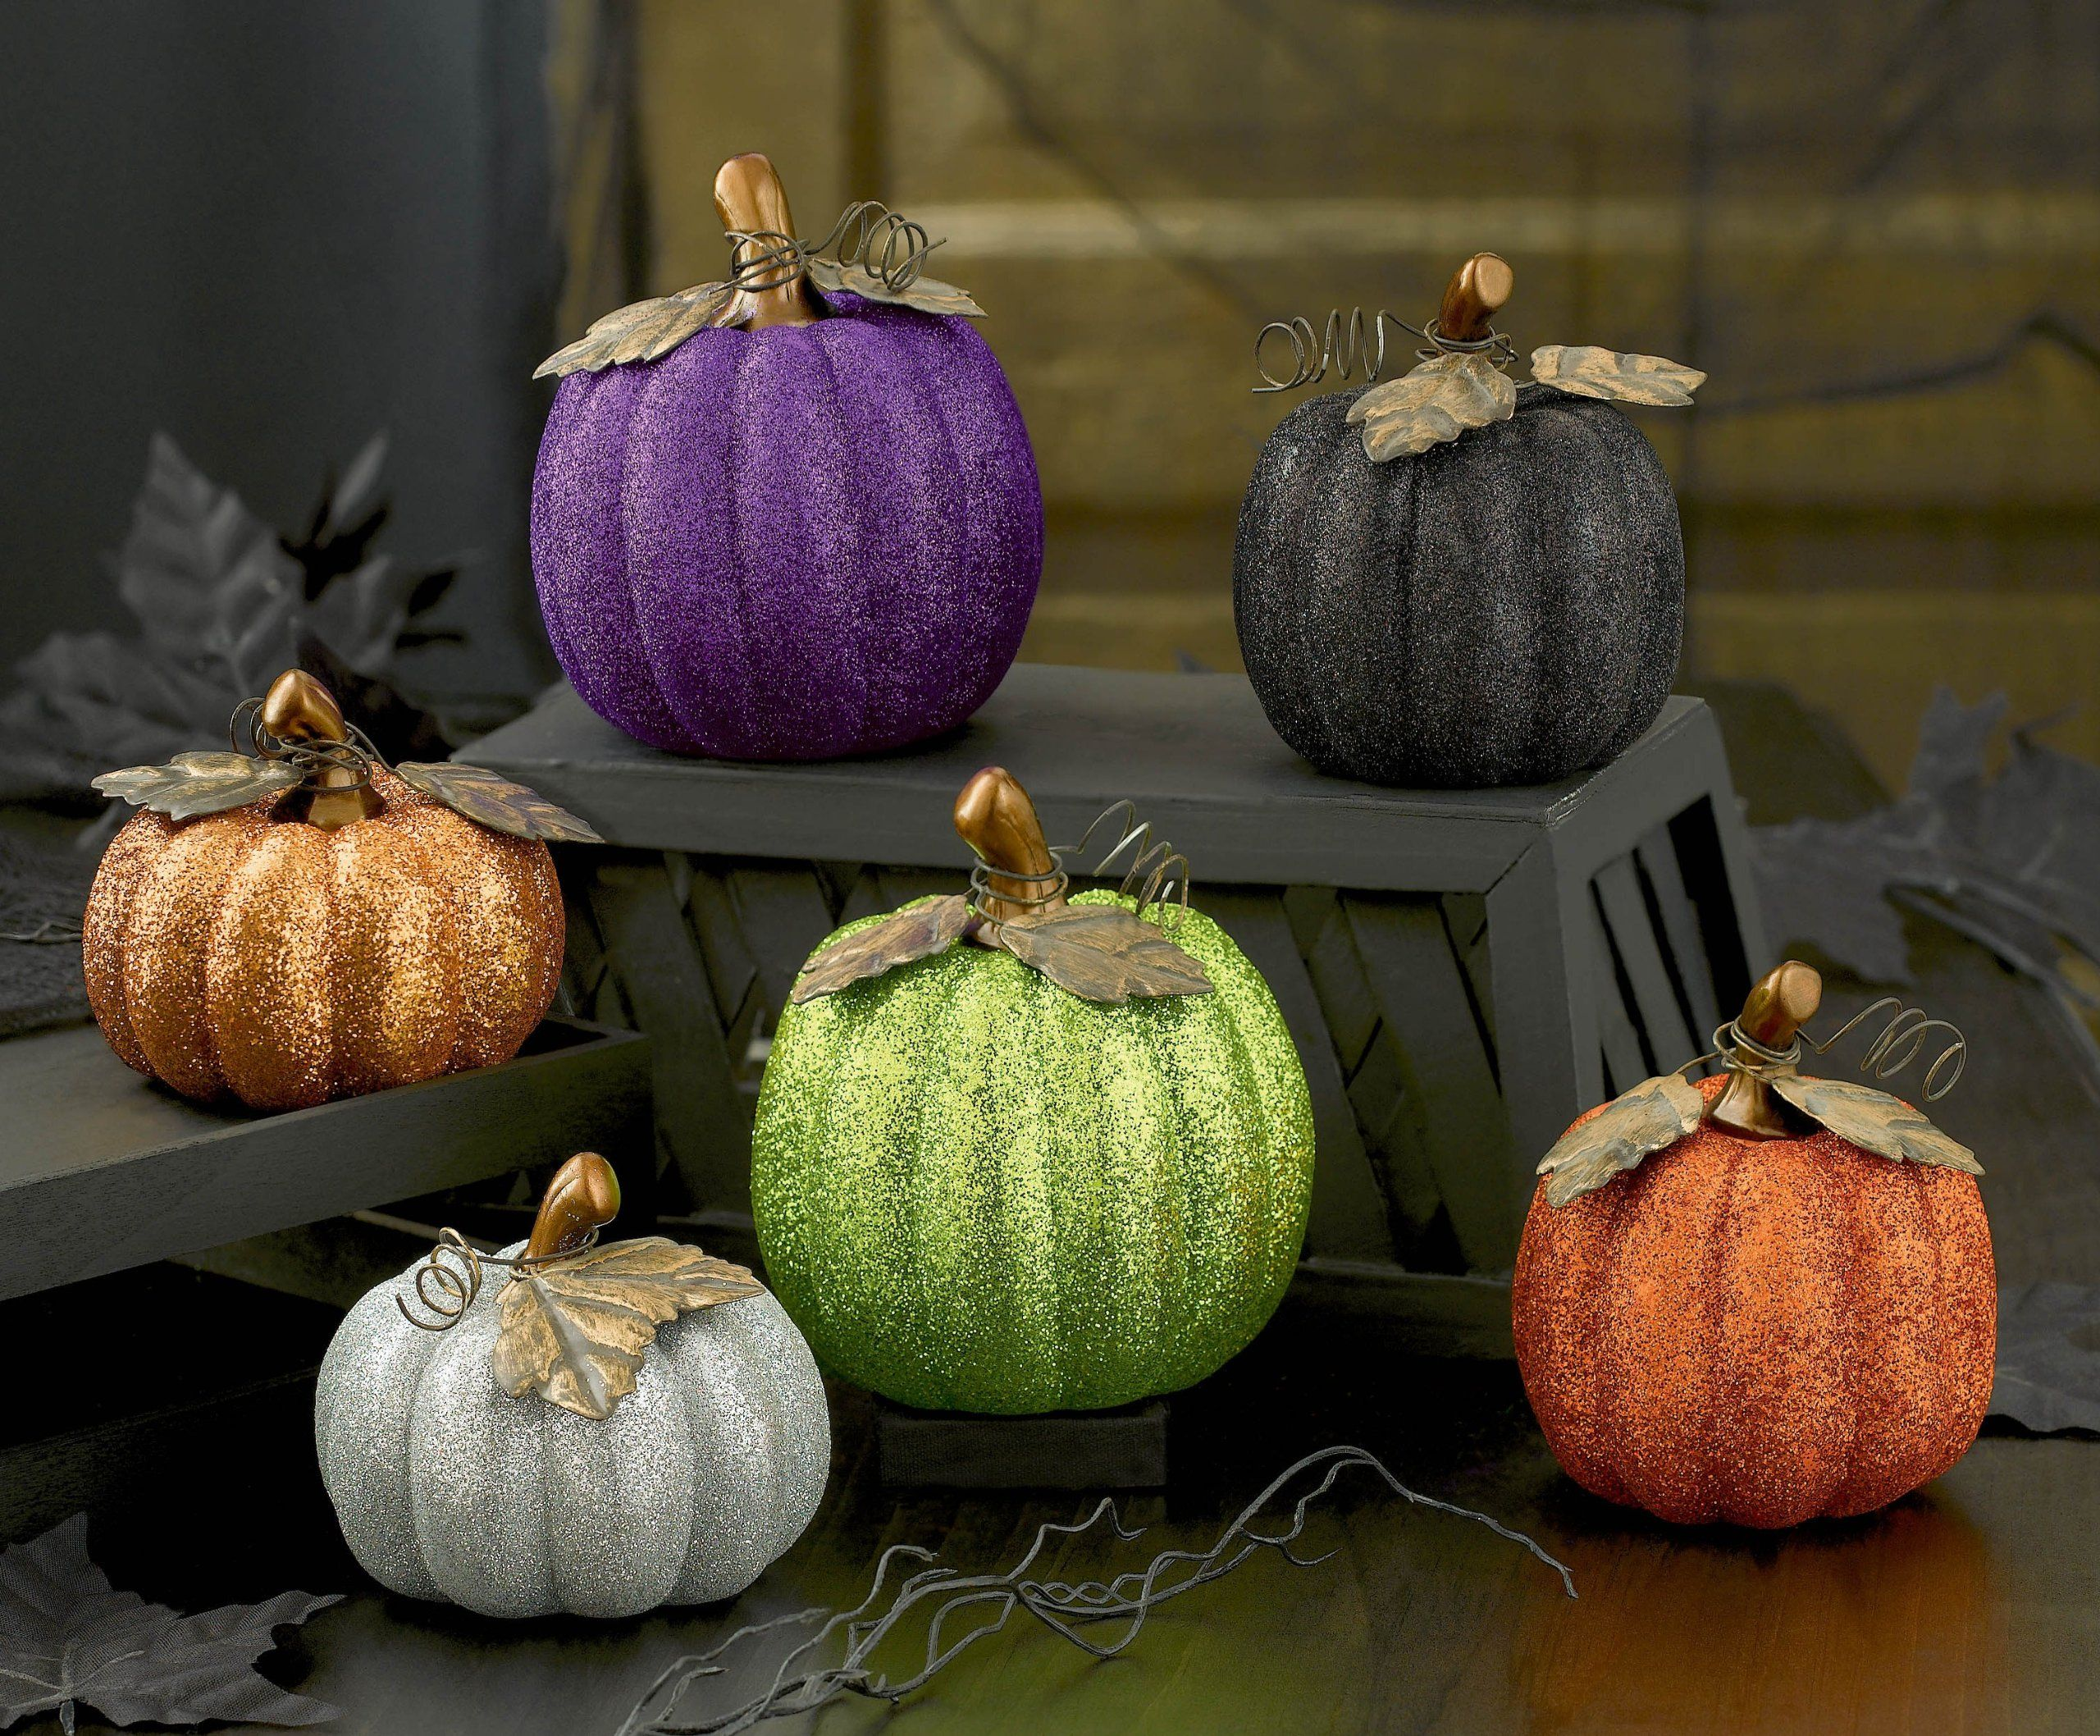 Grasslands Road Glitter Pumpkin Assortment 4 Inch Ceramic Orange Green Purple Black Silver Gold Set Of 6 Glitter Pumpkins Pumpkin Fall Decor